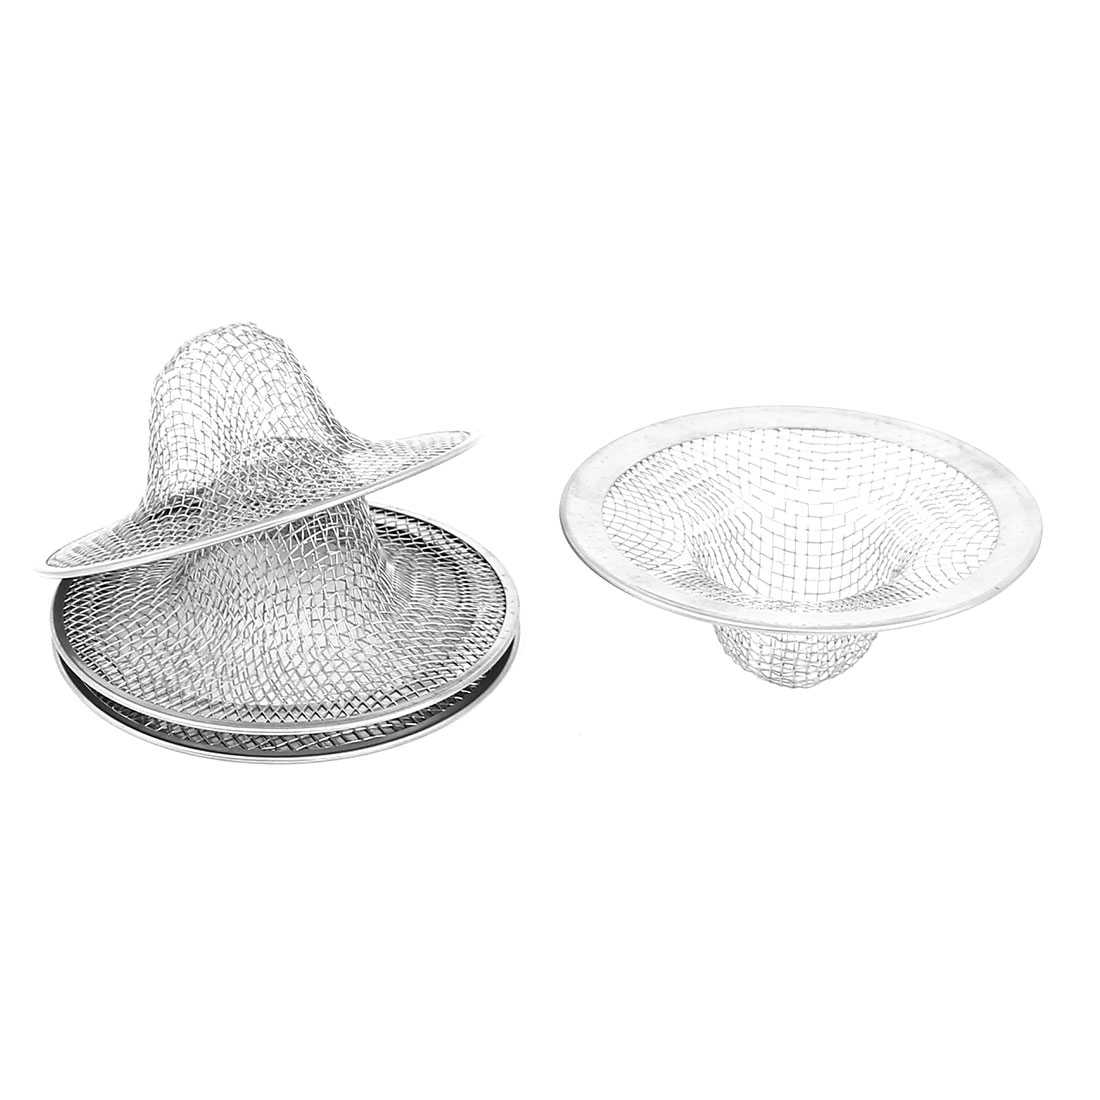 4Pcs Home Kitchen Bathroom Mesh Hole Basin Drain Sink Strainer